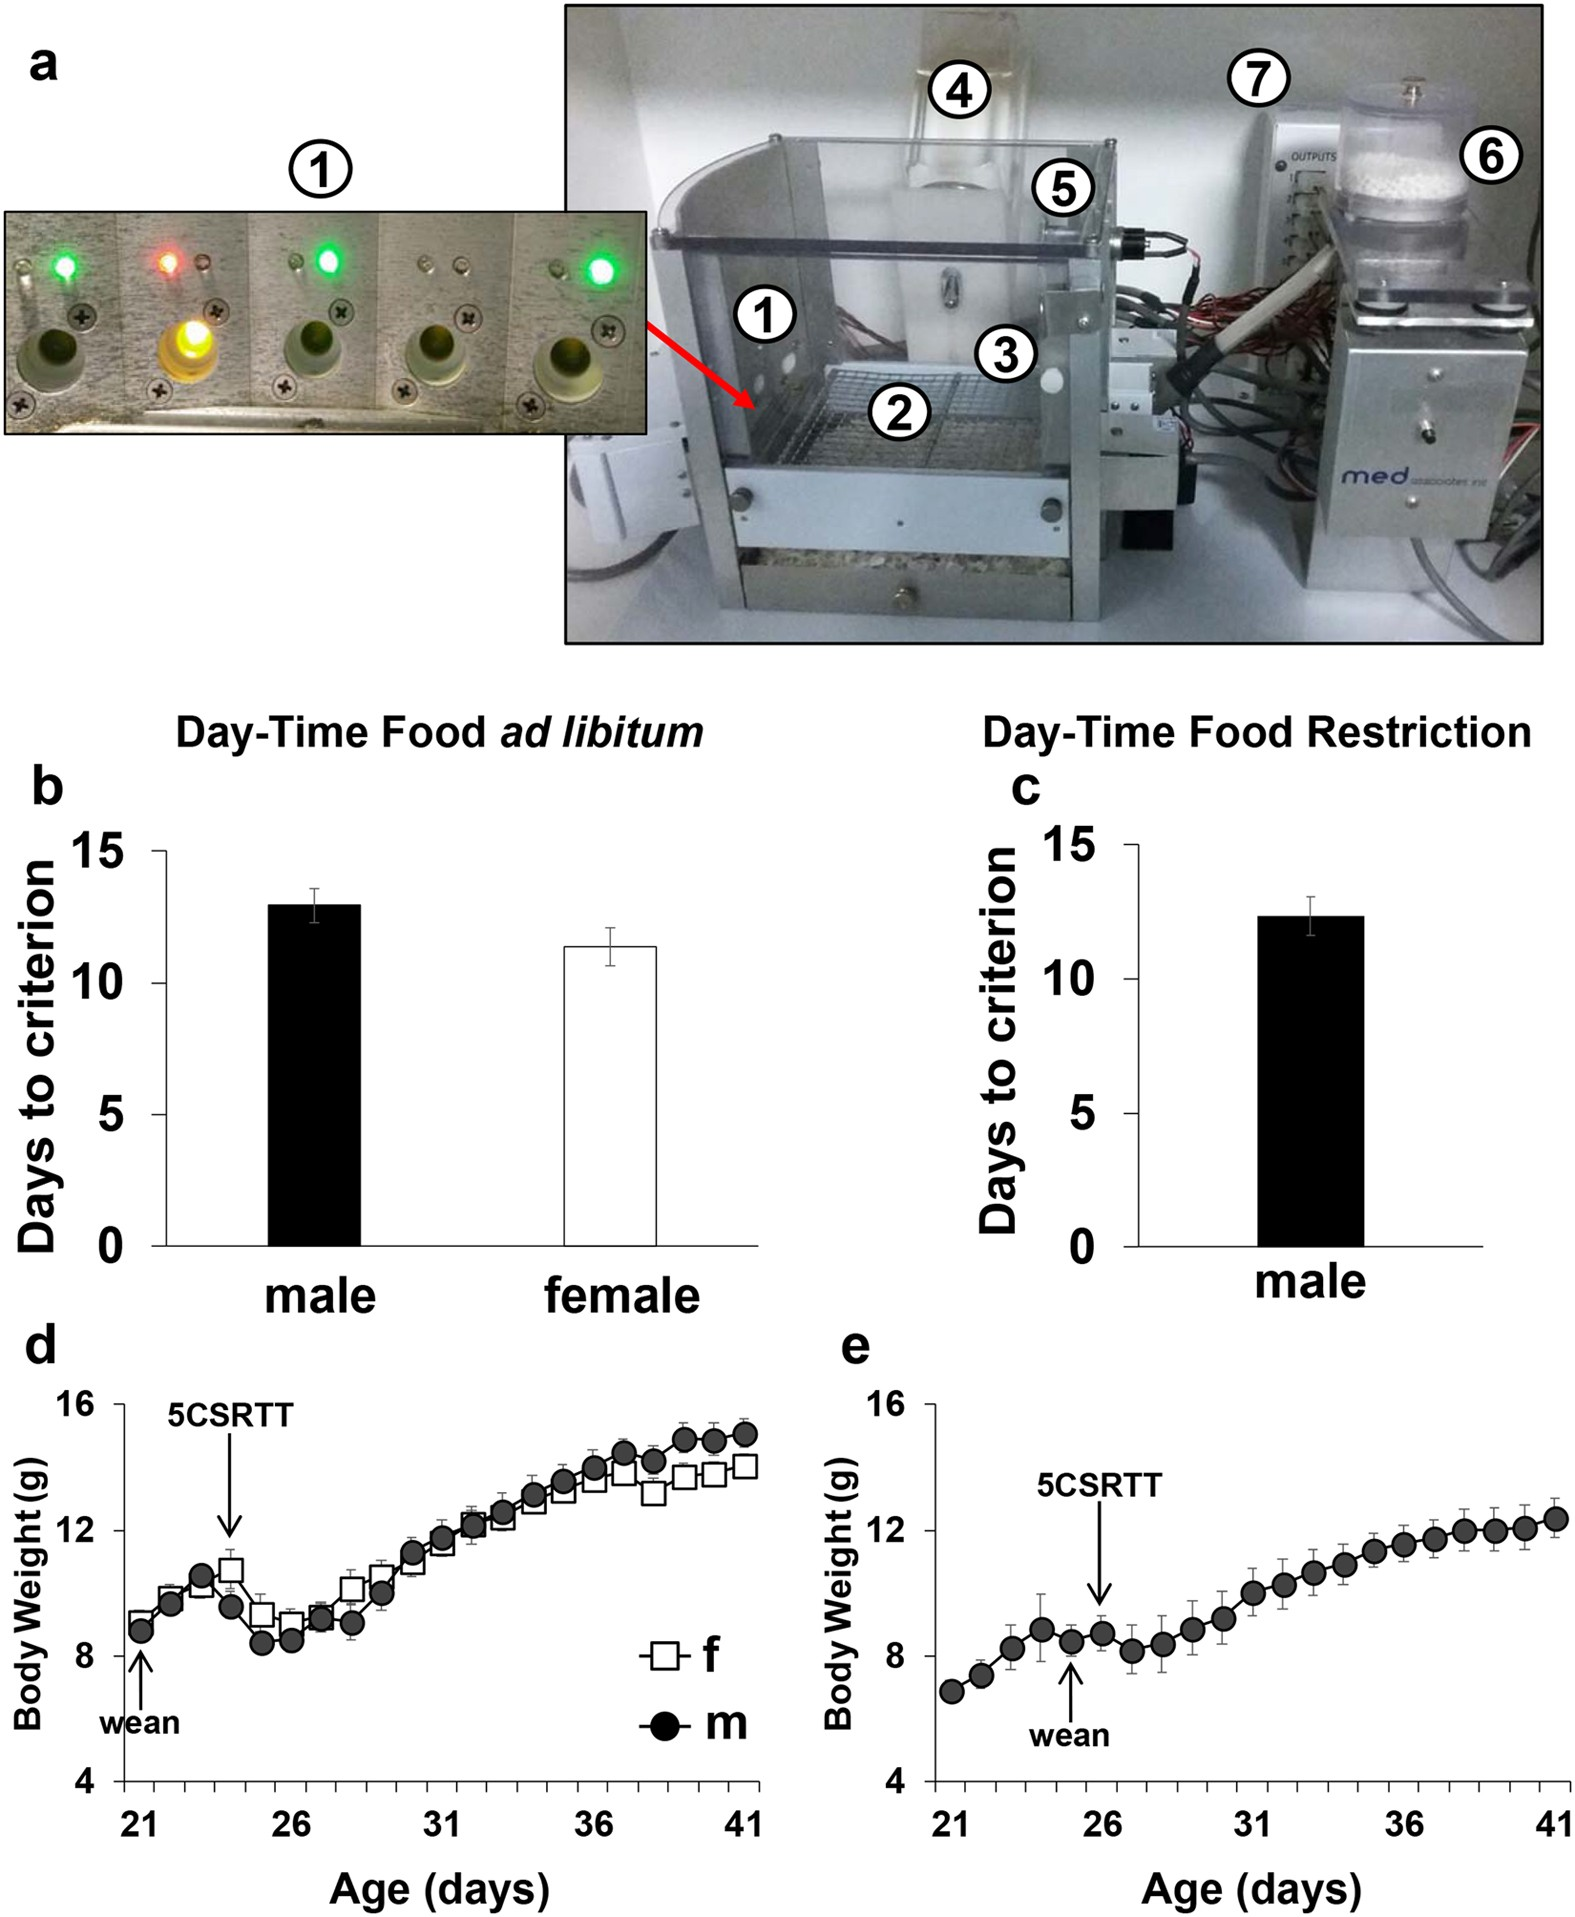 Attentional Control In Adolescent Mice Assessed With A Modified Five Above Is Schematic Diagram Of An Lm741 Light Dark Sensor Circuit Choice Serial Reaction Time Task Scientific Reports